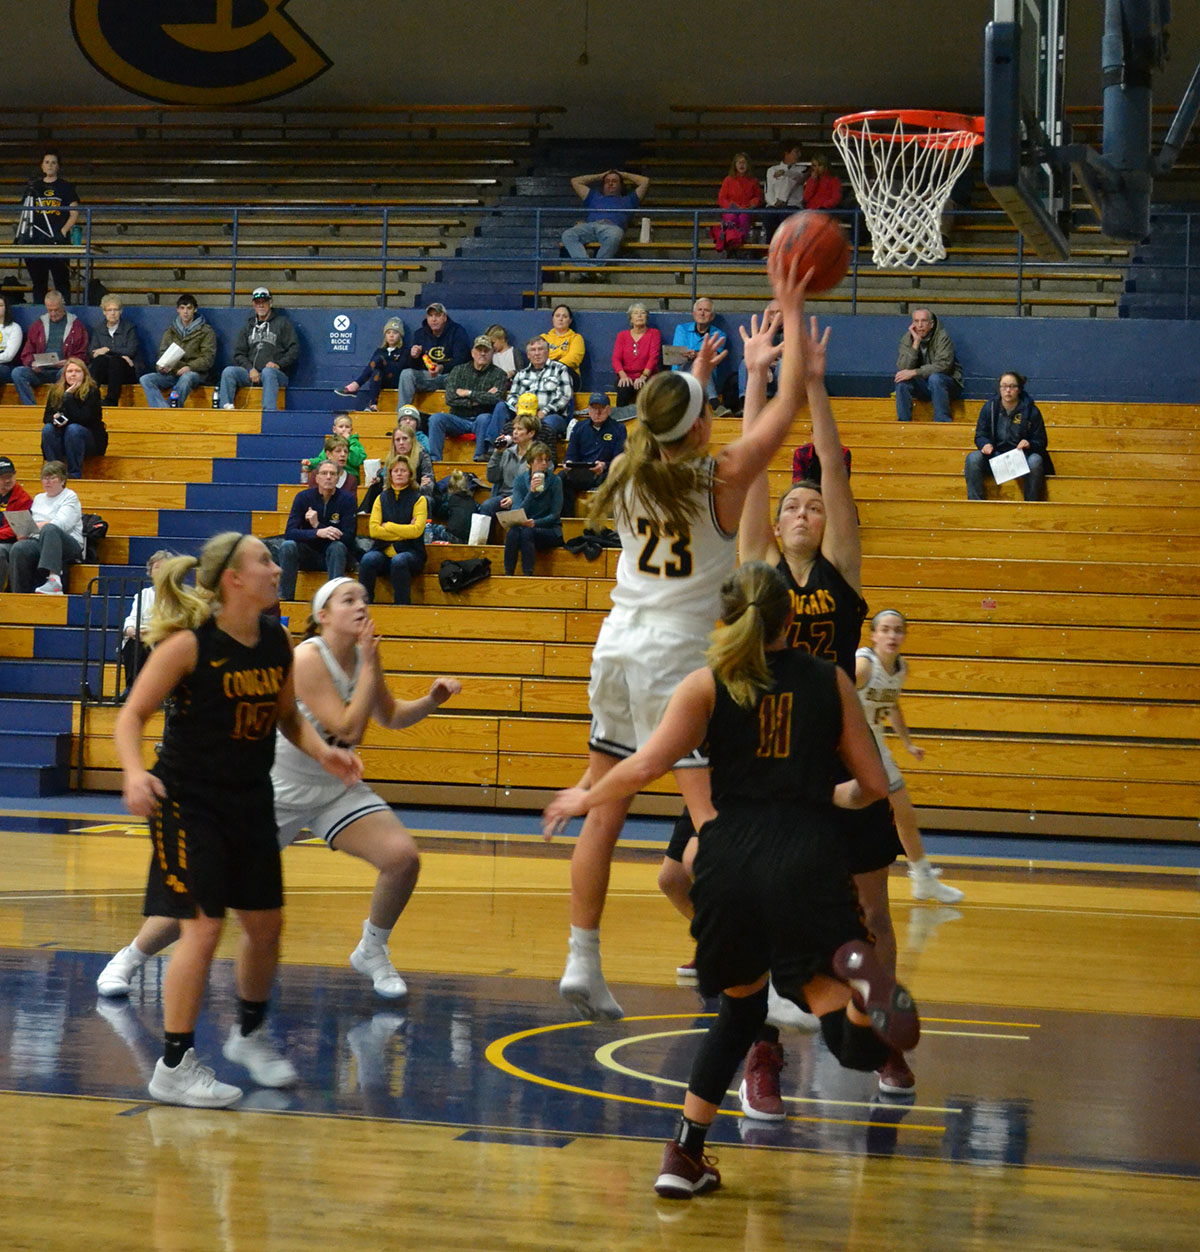 UW-Eau Claire women's basketball has won by at least 14 points in every game this season, with the exception of their overtime victory a week ago.